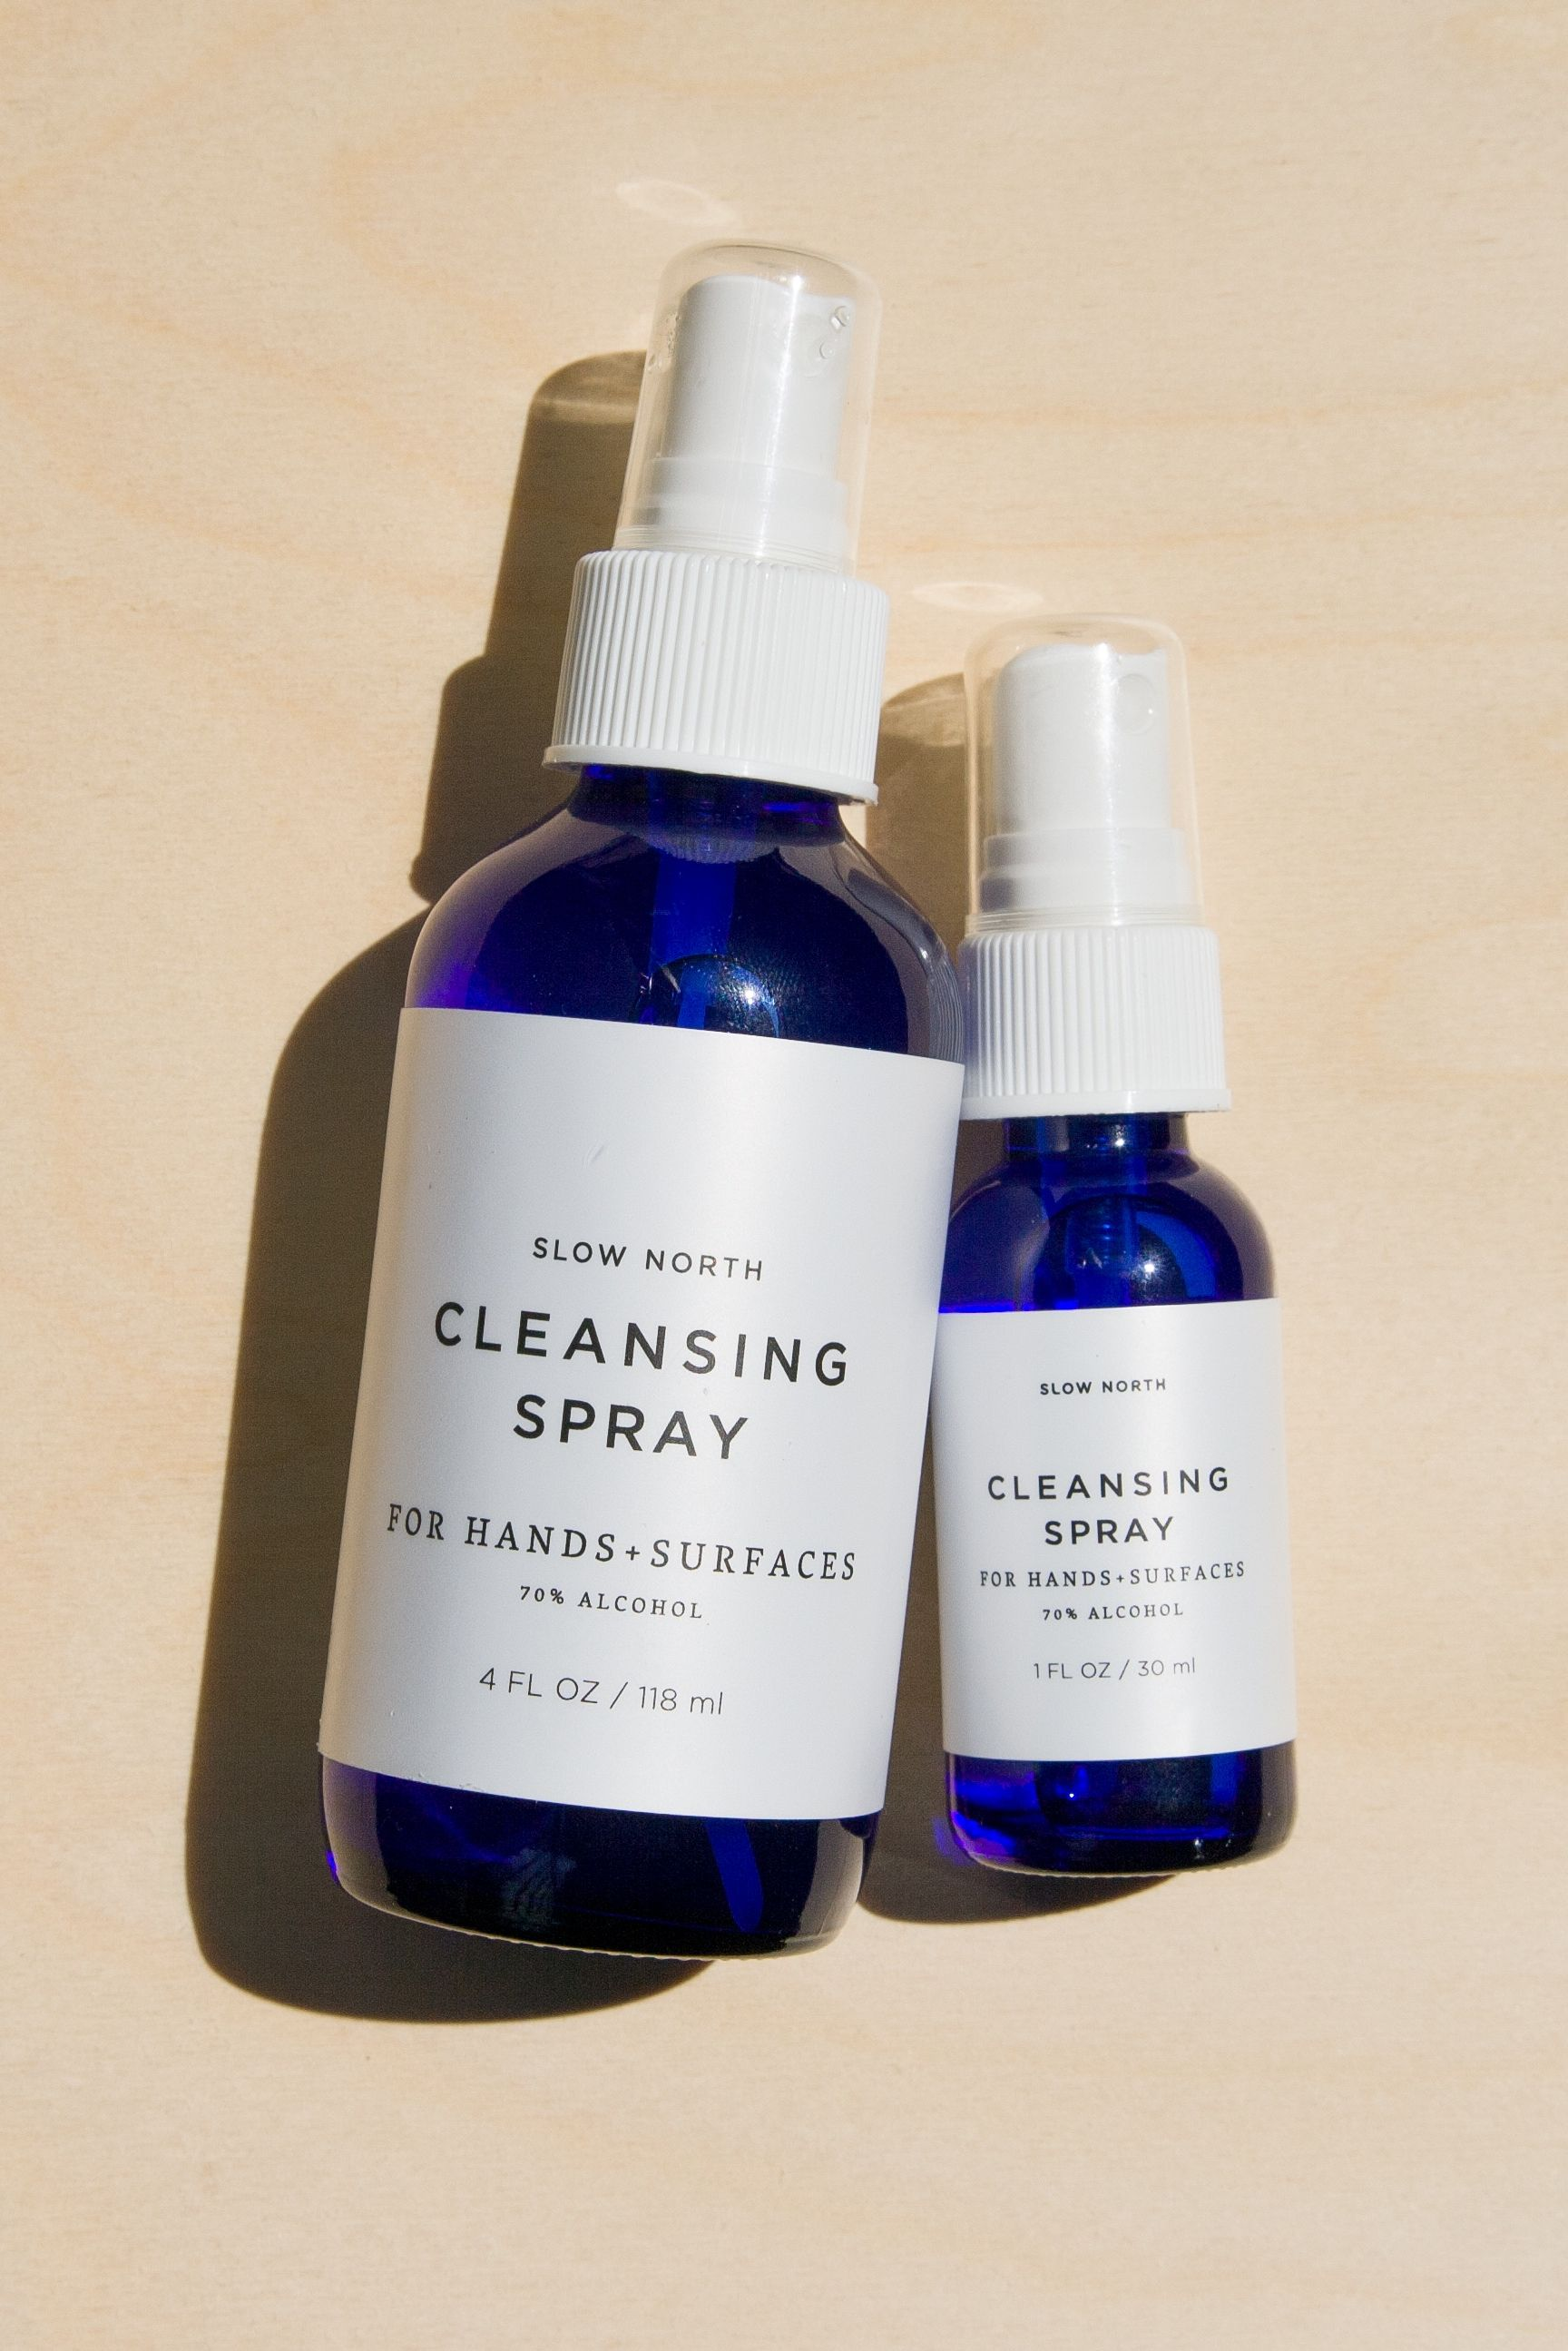 Stay clean on the go! Our essential oil infused cleanser will brighten your mood with every spritz! 🍊🍋  #citrusessentialoils #summervibes #summerscents #natural #vegan #sustainablysourced #handmade #kidfriendly #summerwiththekids #keepingclean #naturalcleaner #bigandmini